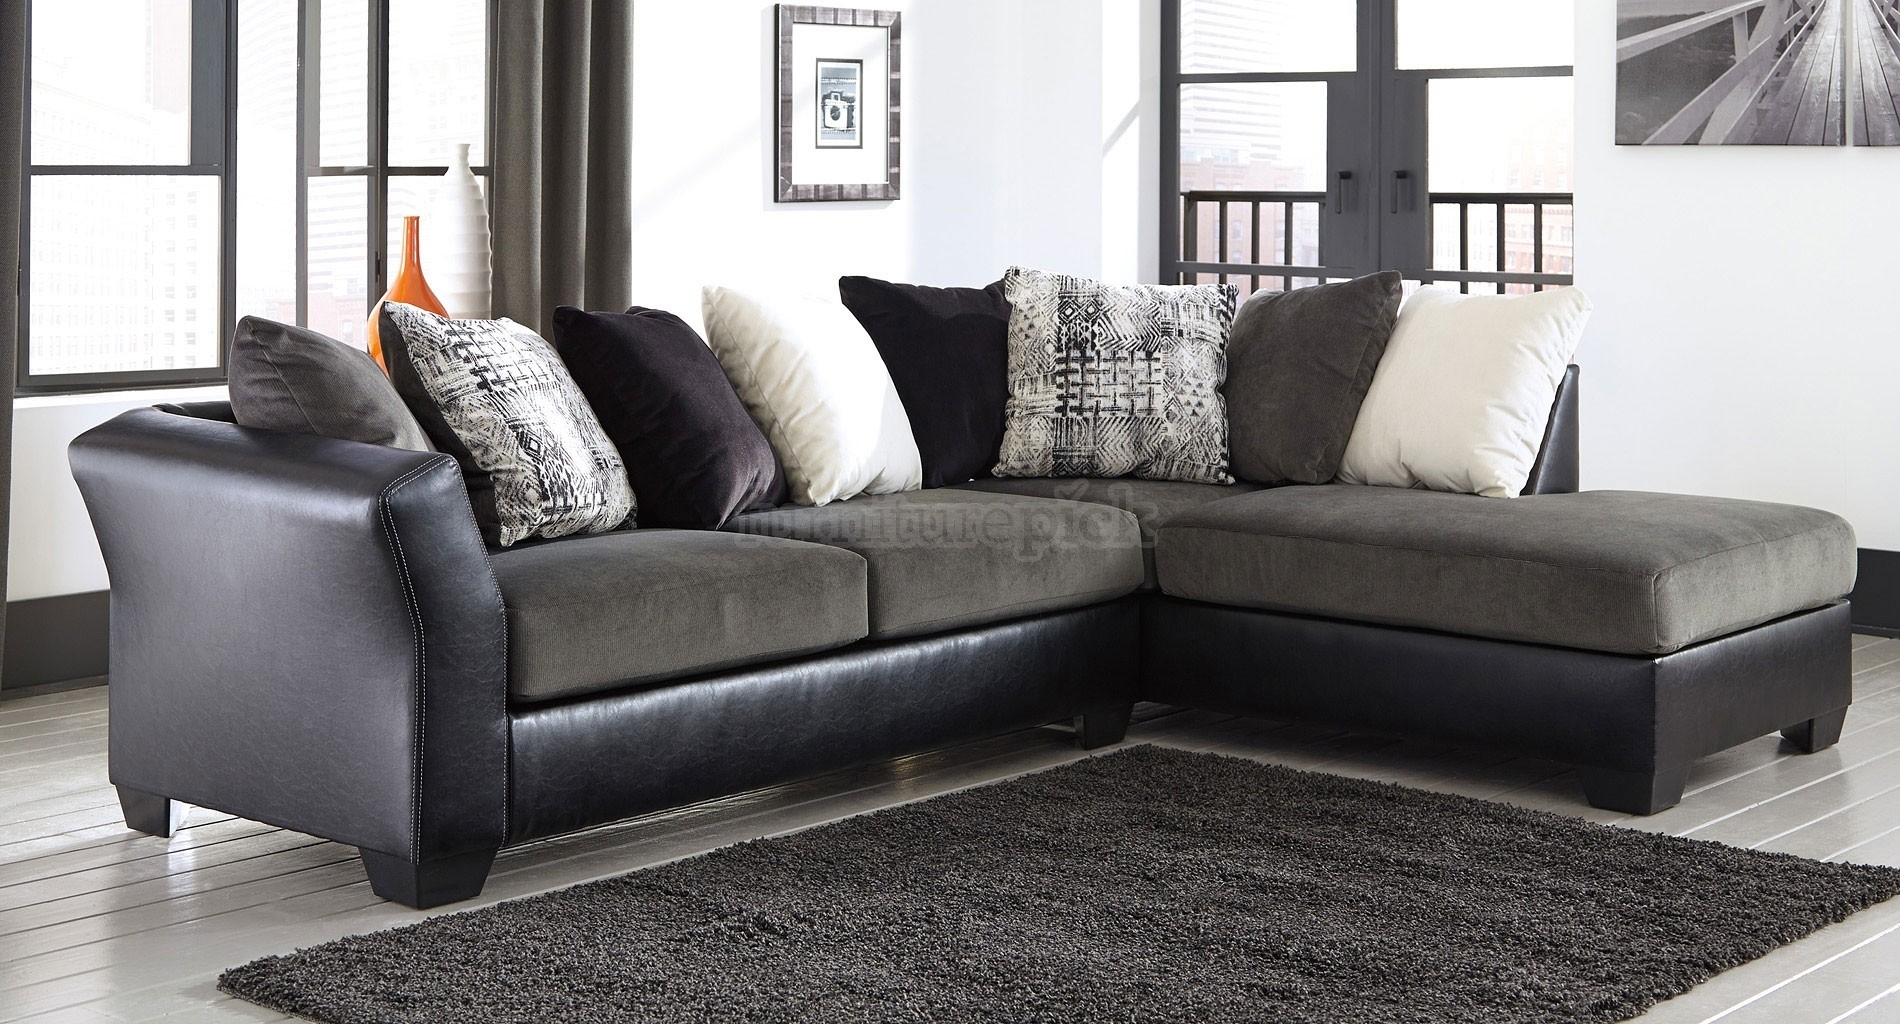 Armant Ebony Right Chaise Sectional | Home Decor | Pinterest Throughout Homemakers Sectional Sofas (View 3 of 10)